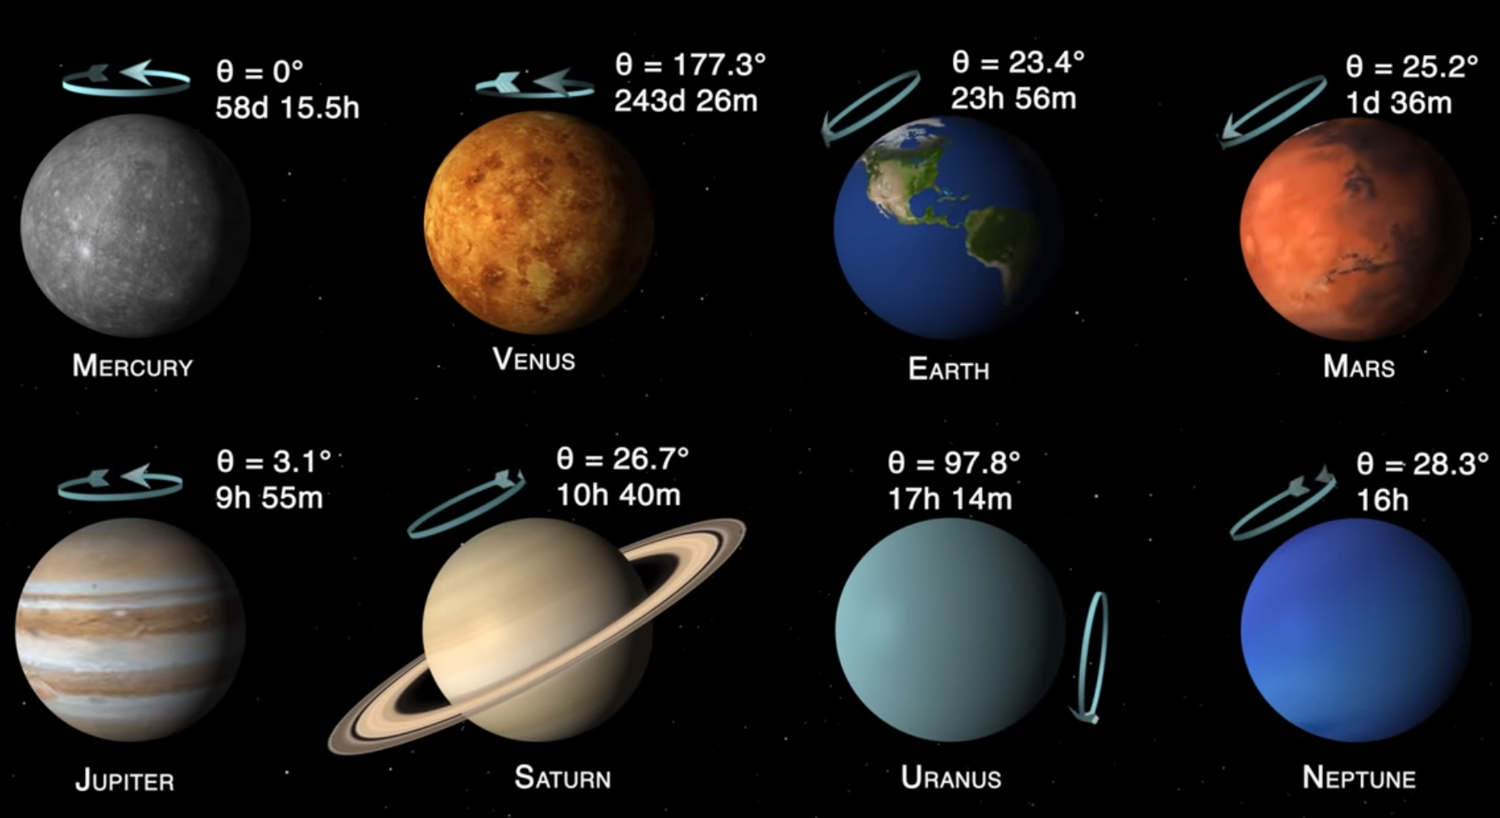 Planets of the Solar System- tilts and spins